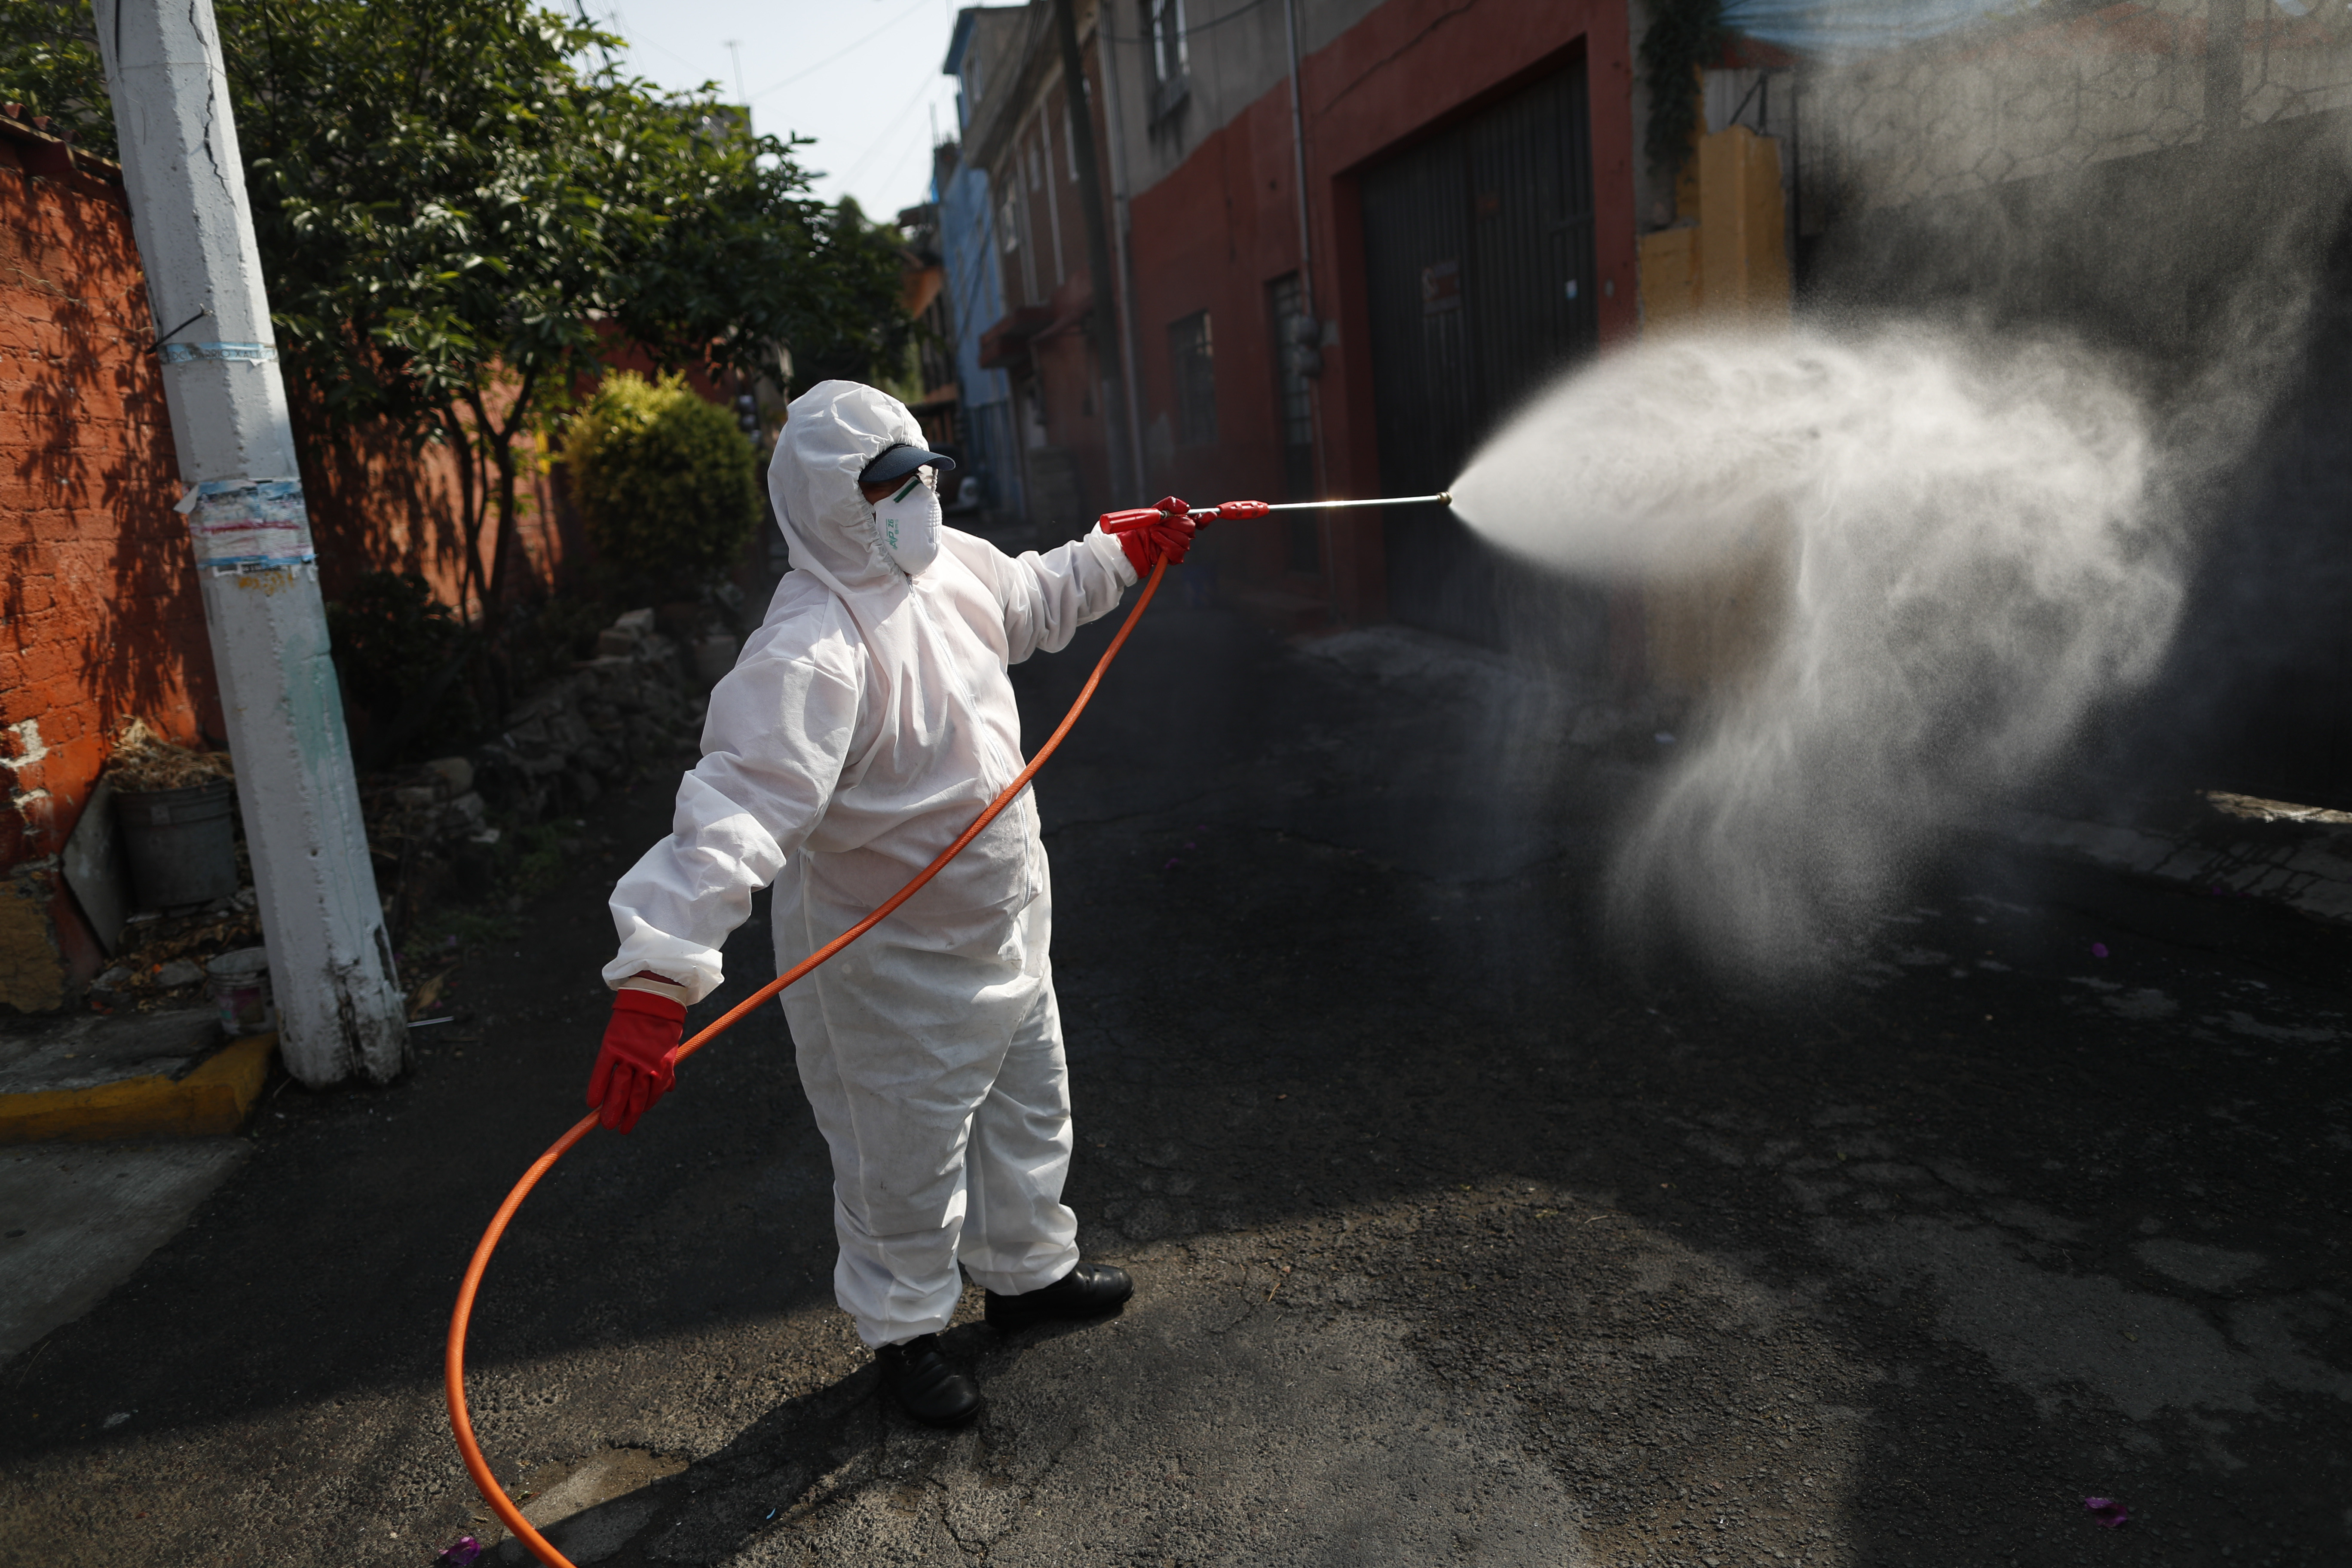 A public safety worker sprays a disinfectant solution in the streets of the El Rosario neighborhood, which had seen a recent cluster of COVID-19 cases, in Xochimilco, Mexico City, Mexico, Friday, May 29, 2020. (AP Photo/Rebecca Blackwell)